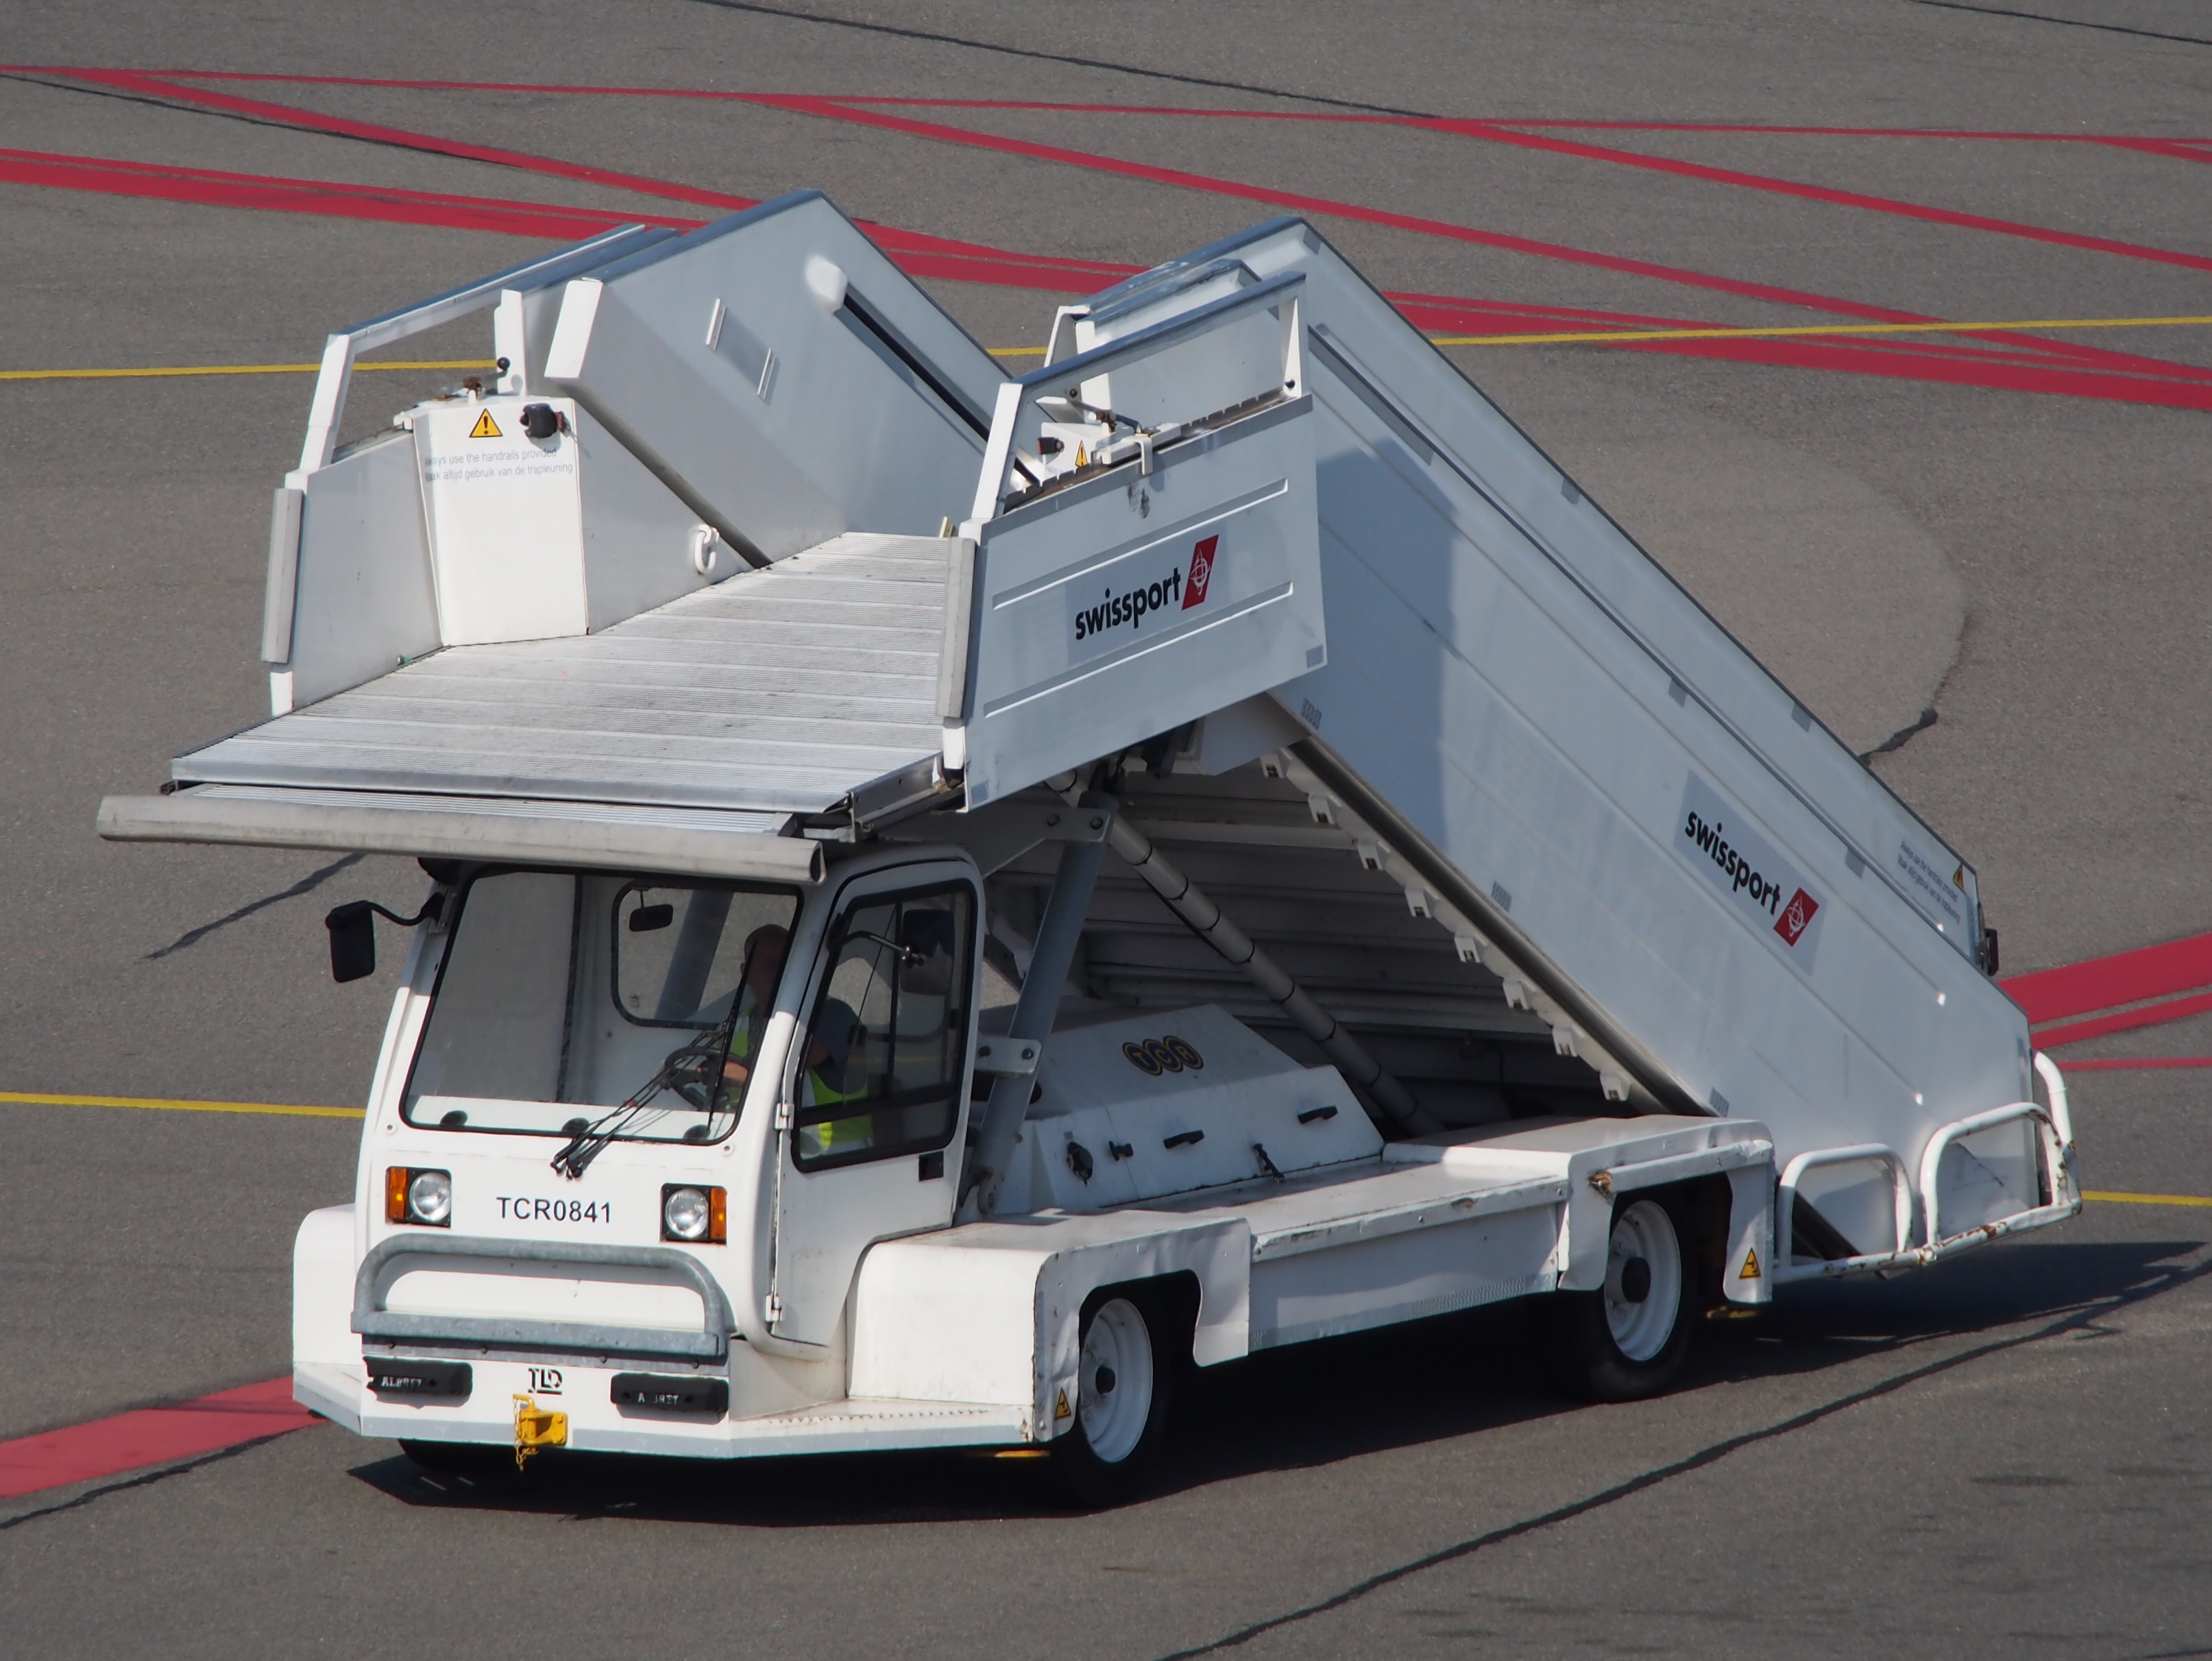 File:Mobile Stairs, Amsterdam Airport Pic1.JPG